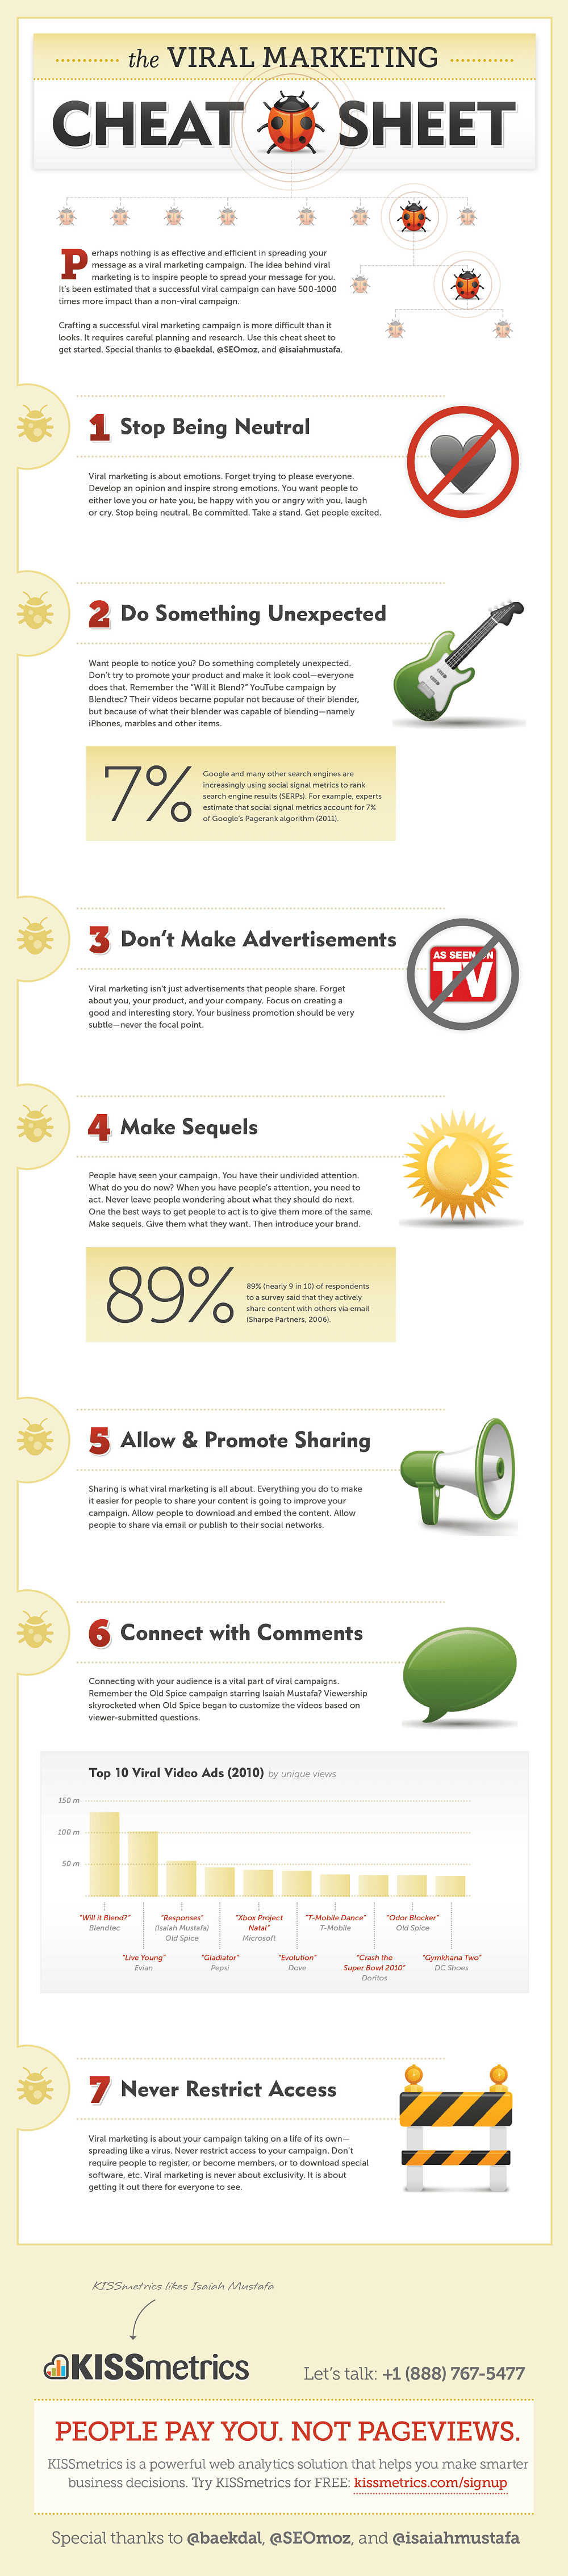 The Complete Viral Marketing Cheat Sheet [Infographic]